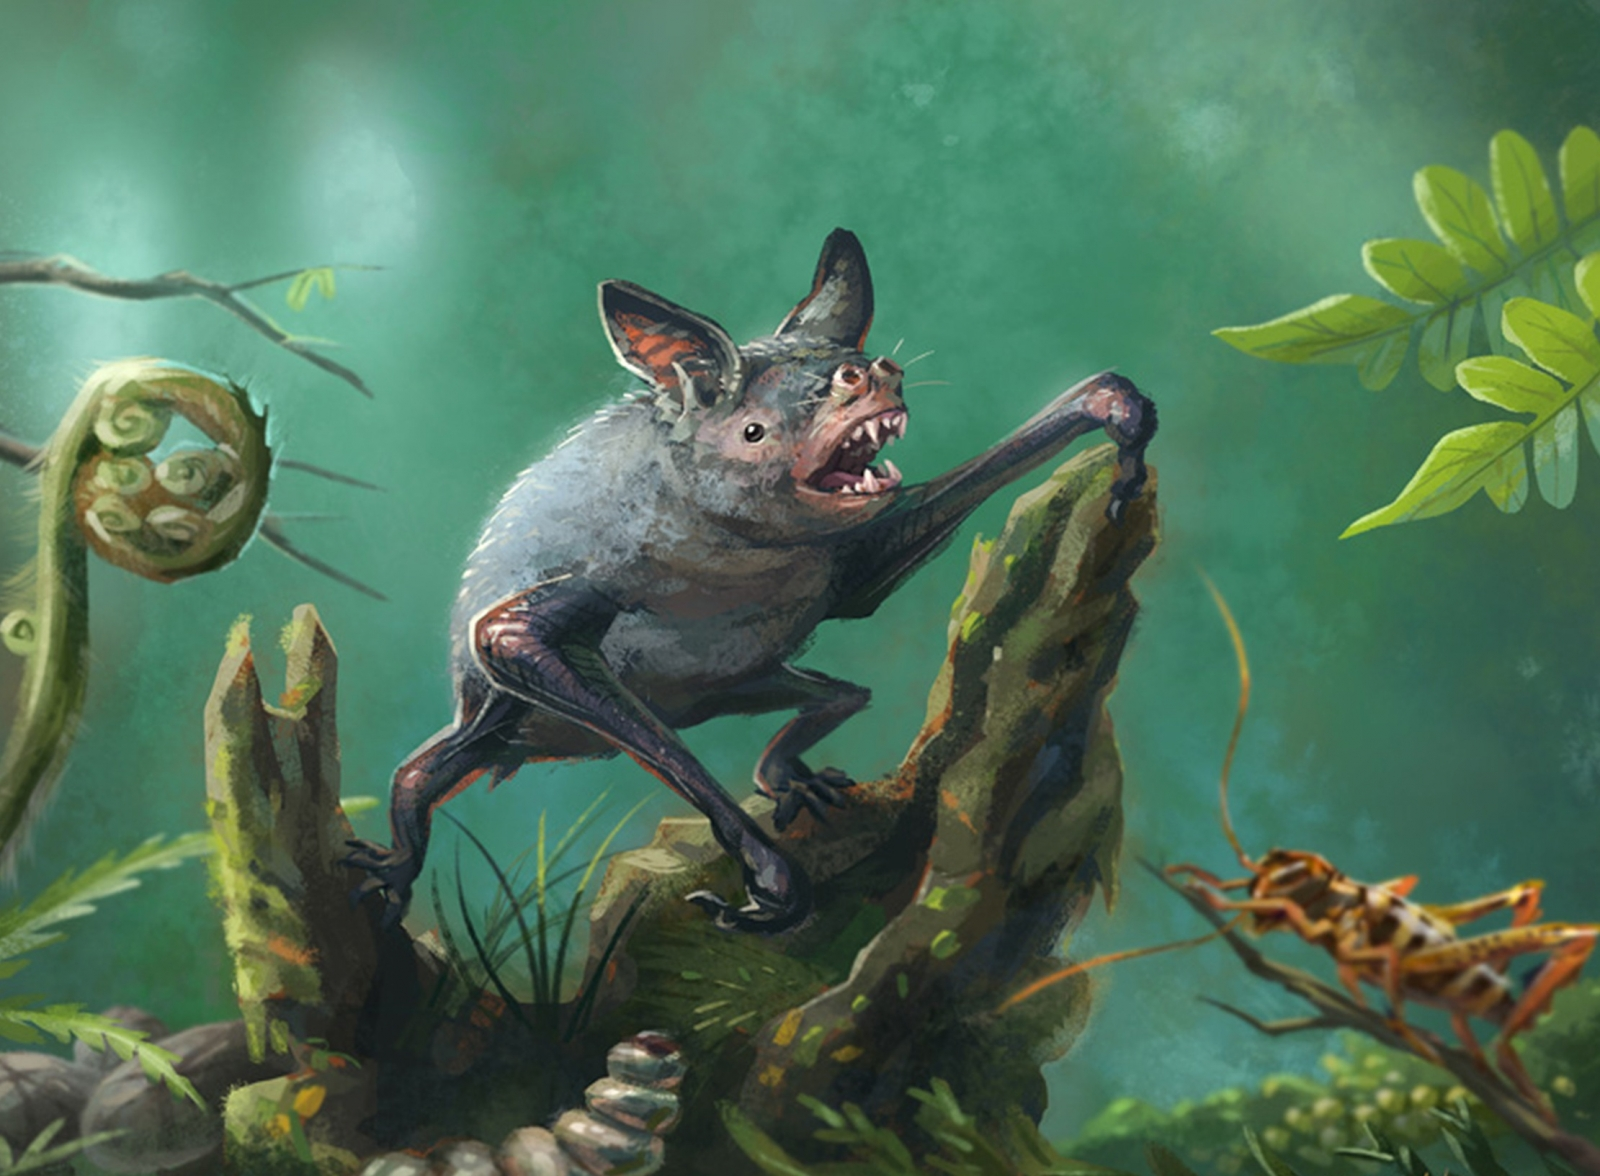 Giant Bat: Remains Of Extinct Burrowing Bat Found In New Zealand